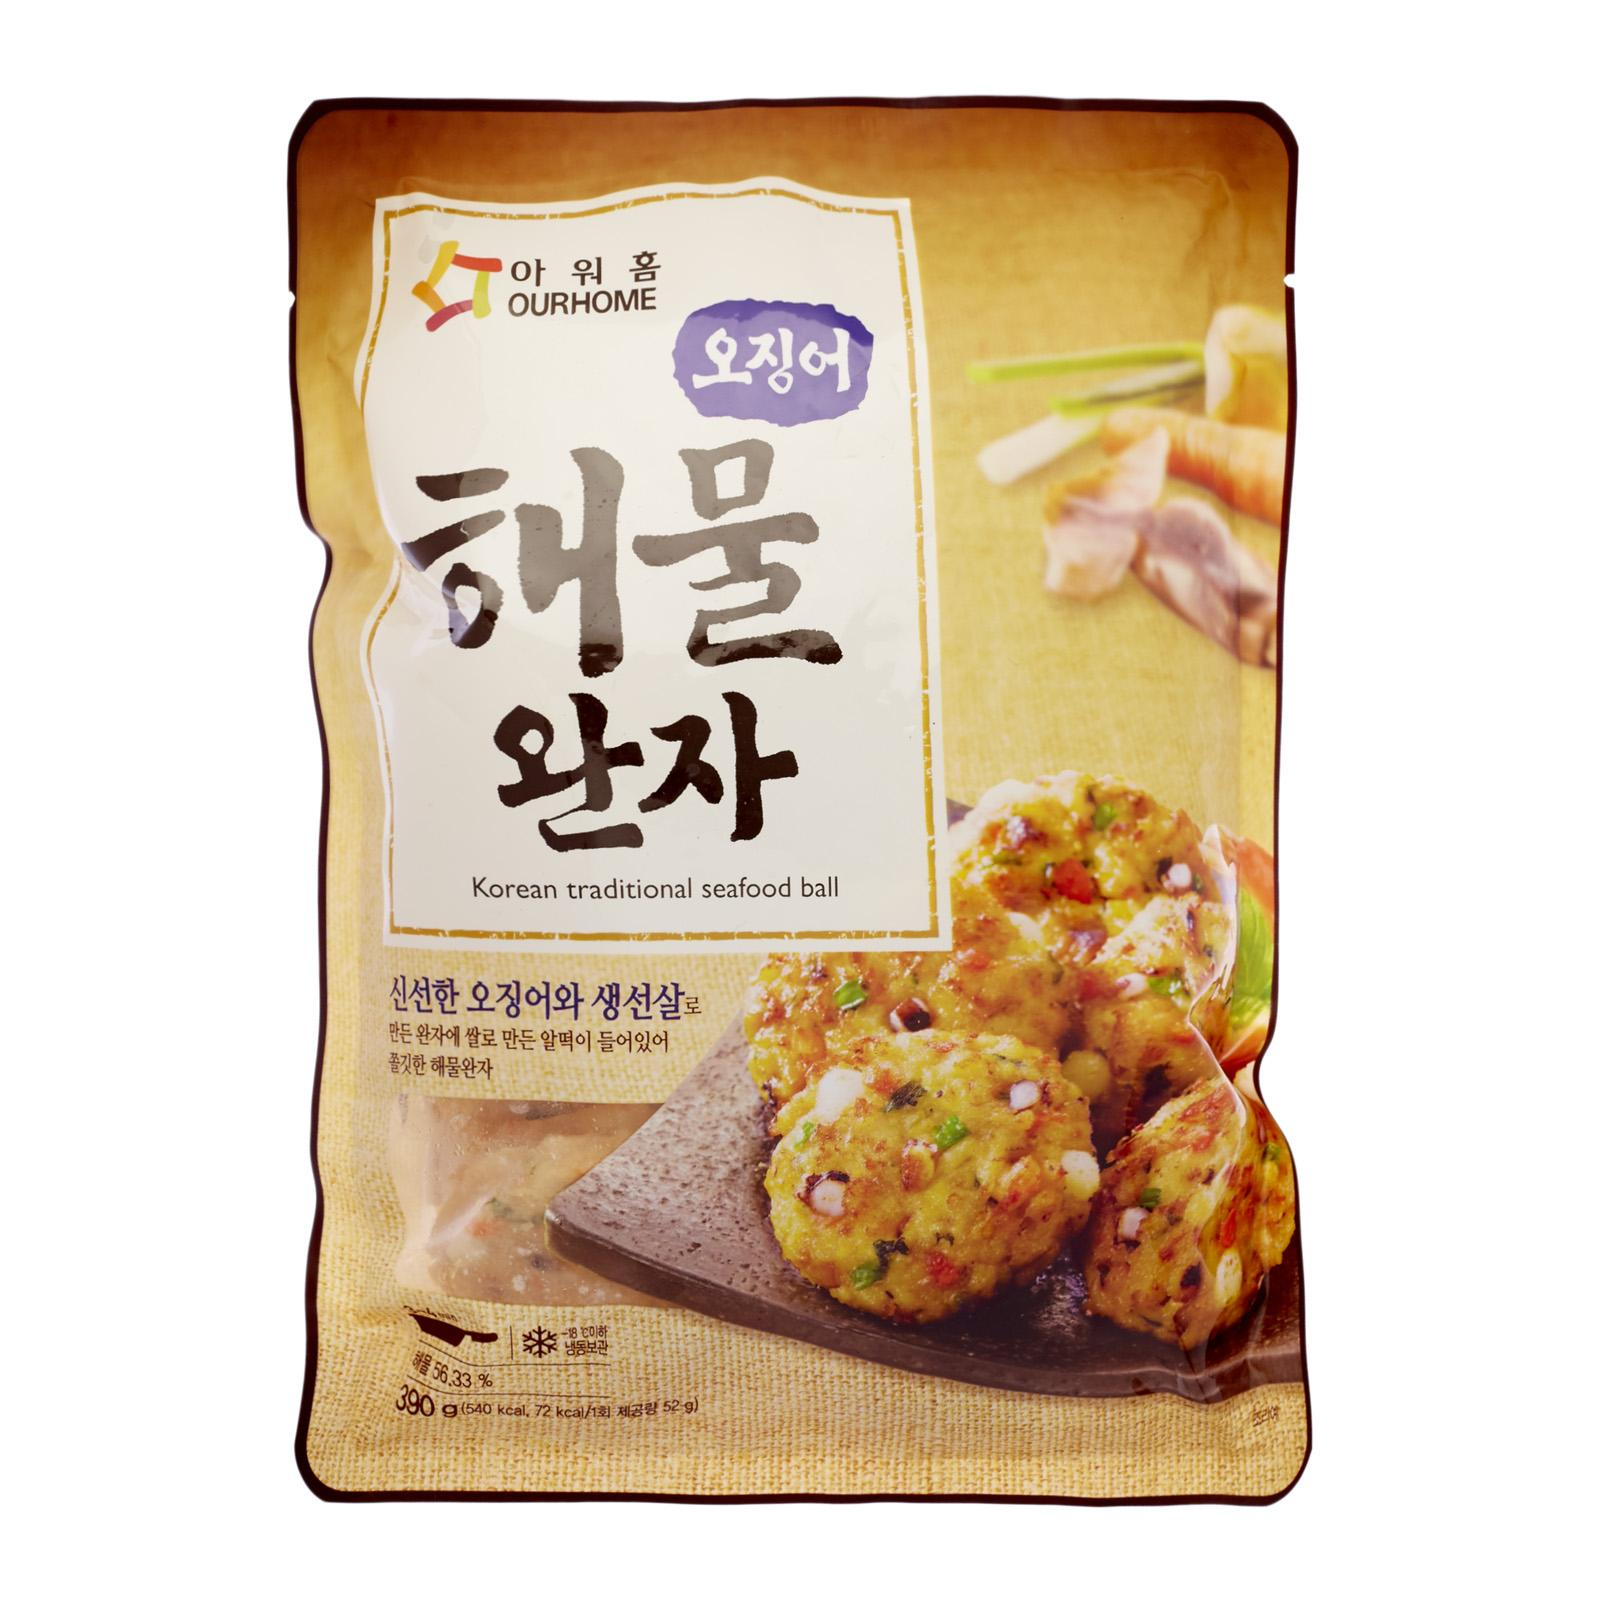 Ourhome Korea Traditional Seafood Ball - Frozen By Redmart.